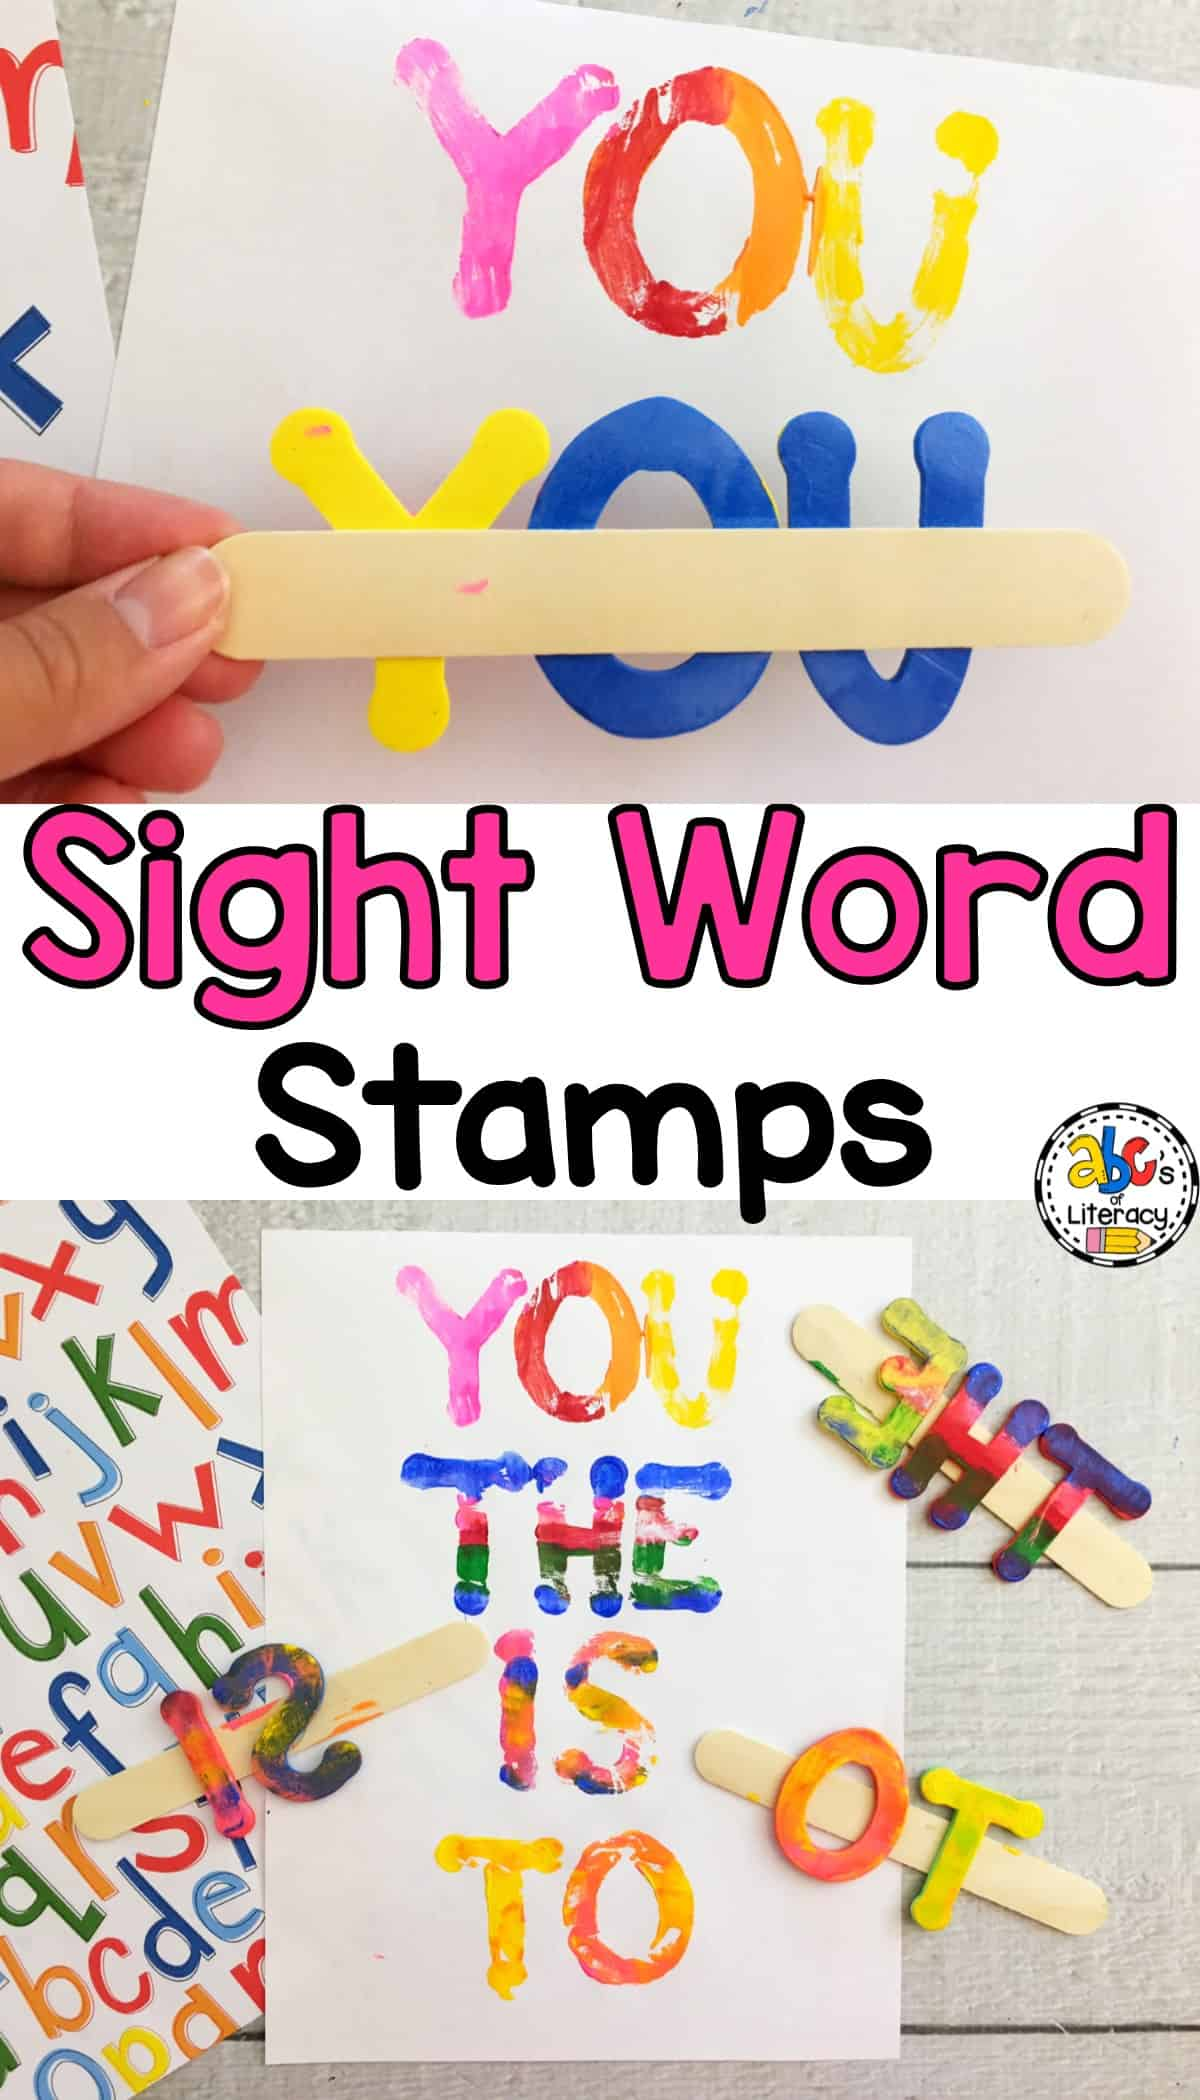 How To Make Sight Word Stamps For Literacy Centers